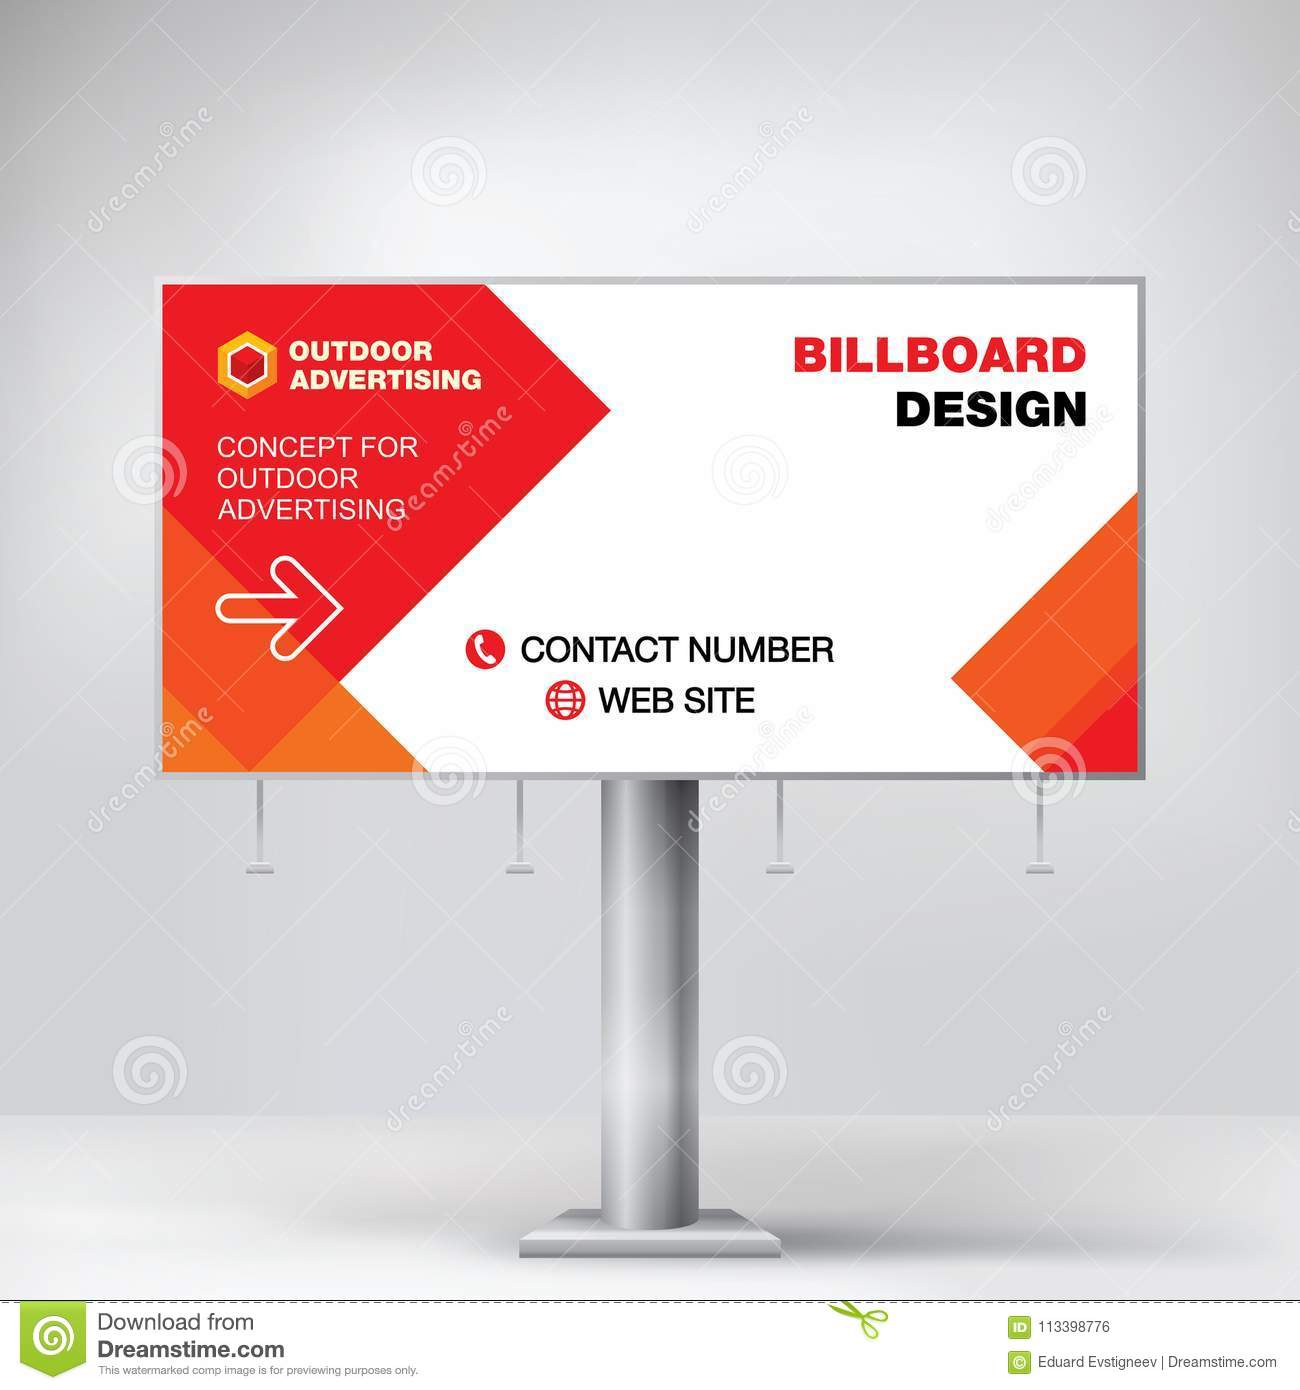 Billboard Design Template Free from thumbs.dreamstime.com